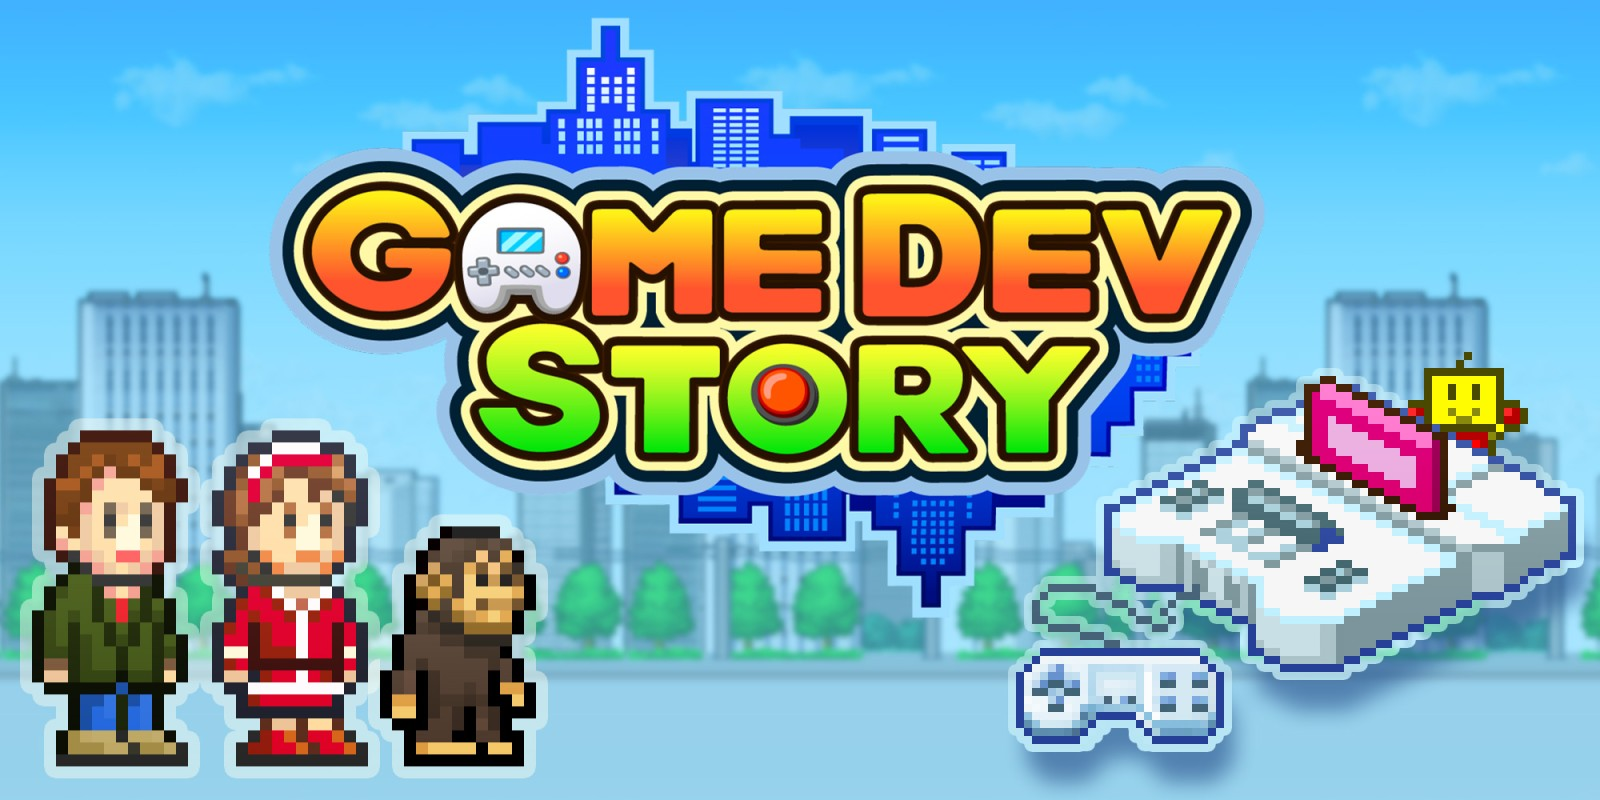 Game dev story for android download apk free.